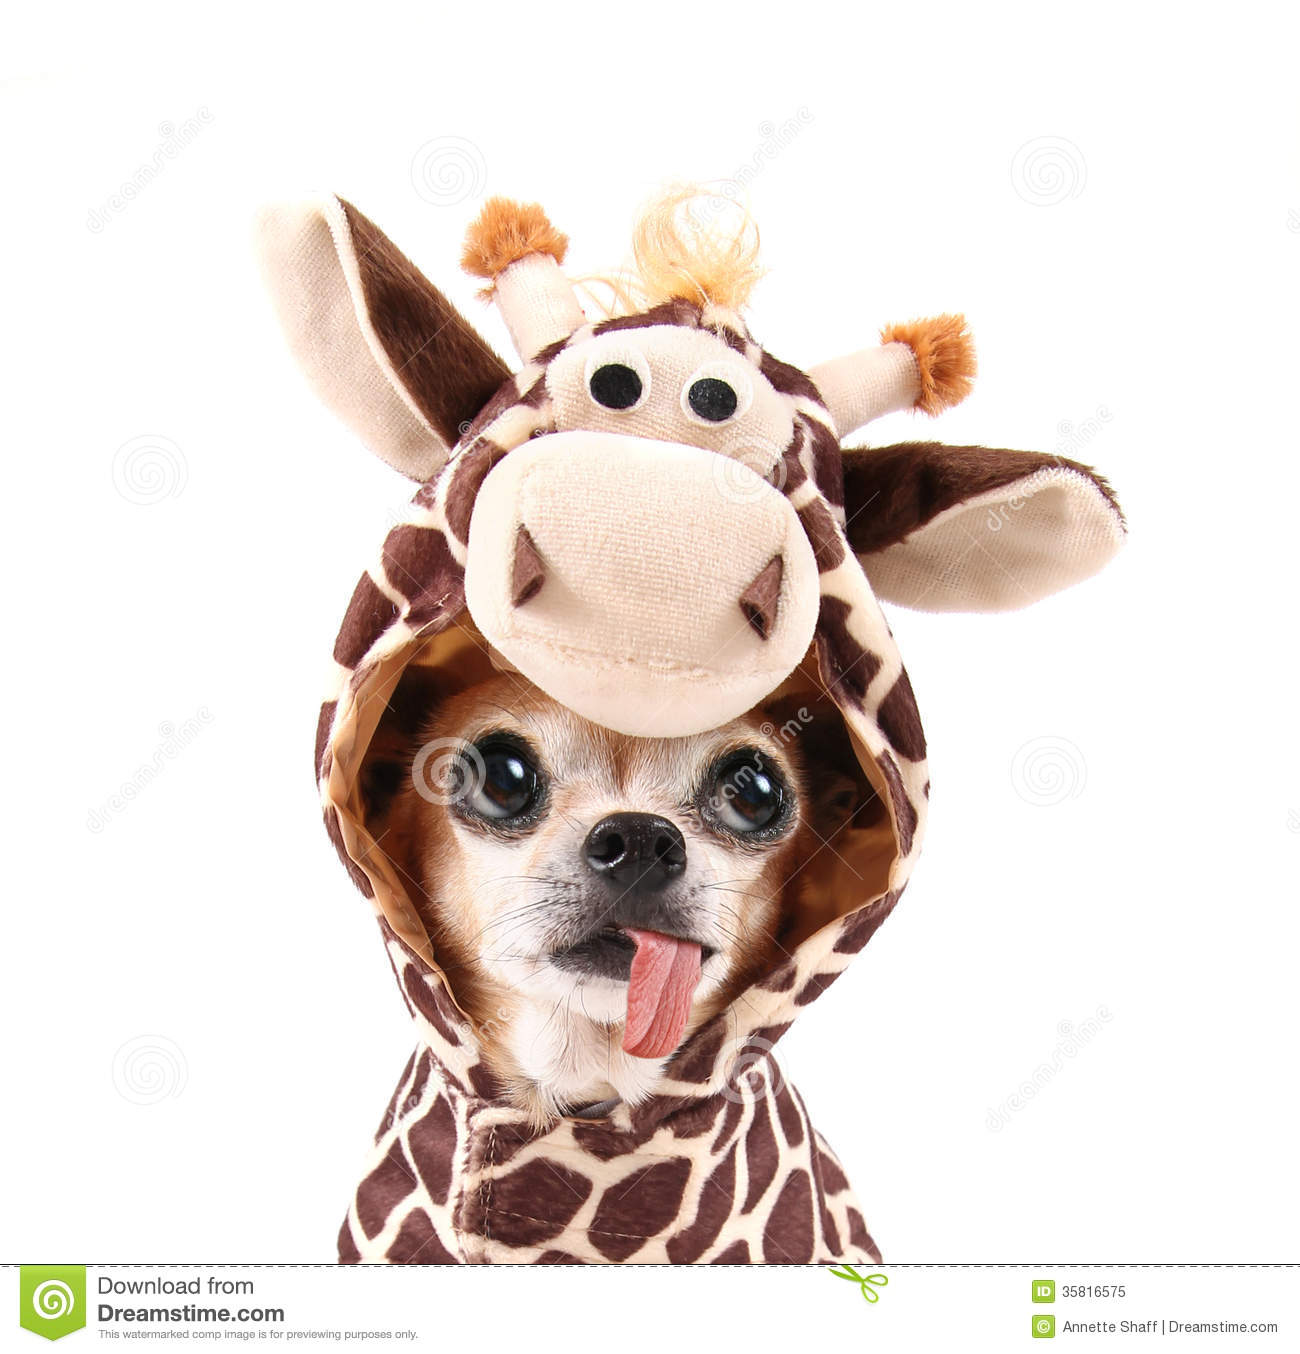 Download A Cute Chihuahua In A Costume Stock Image - Image of background mammal  sc 1 st  Dreamstime.com & A Cute Chihuahua In A Costume Stock Image - Image of background ...